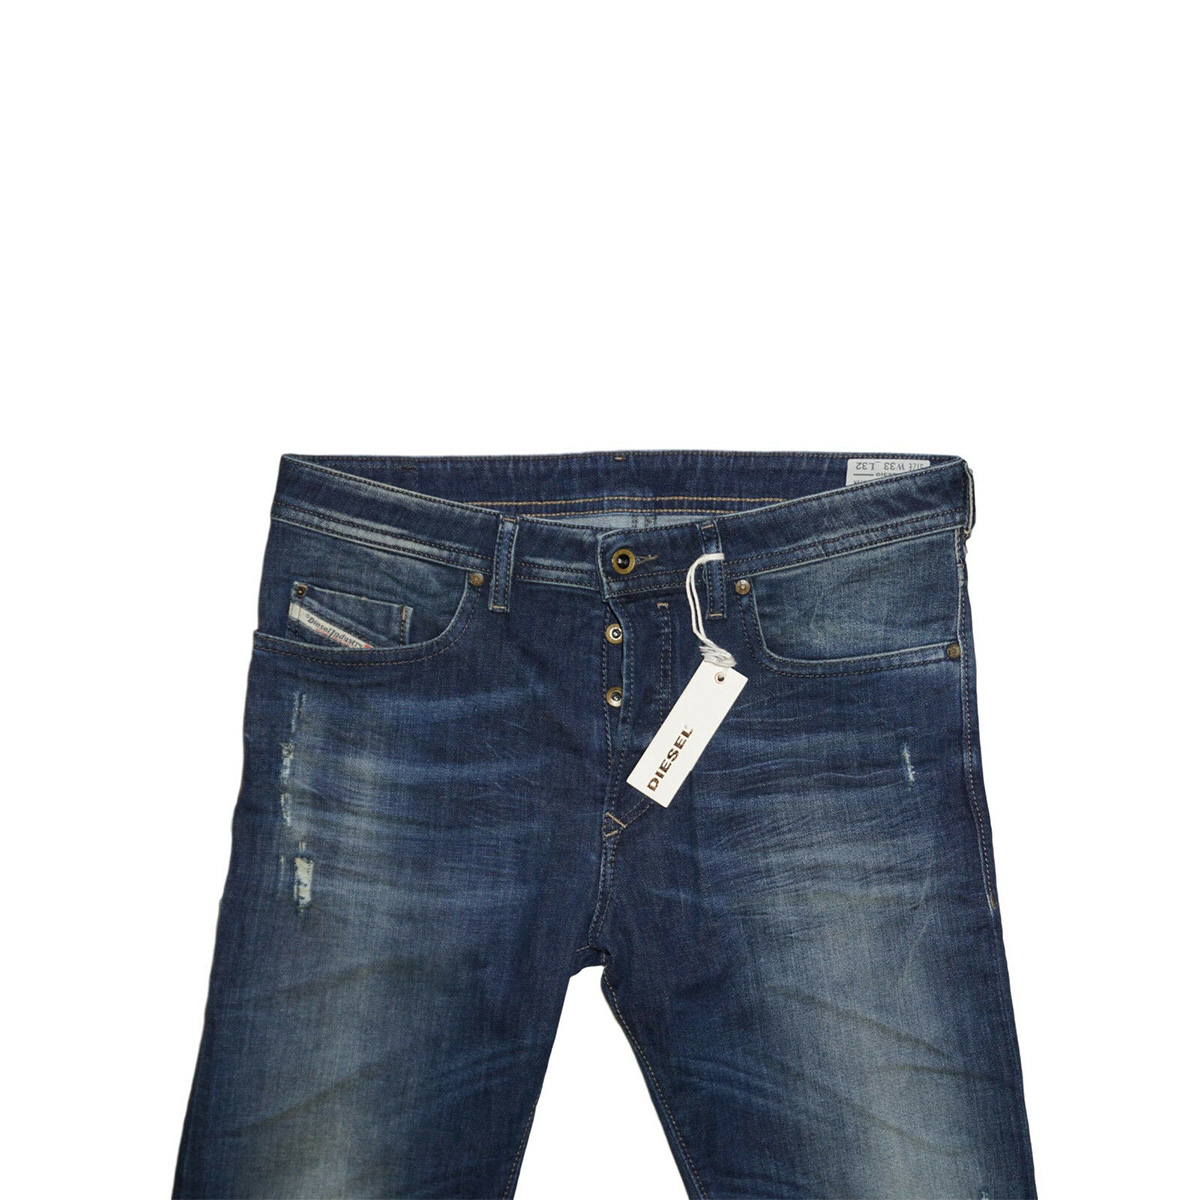 quan-jeans-diesel-buster-0833f